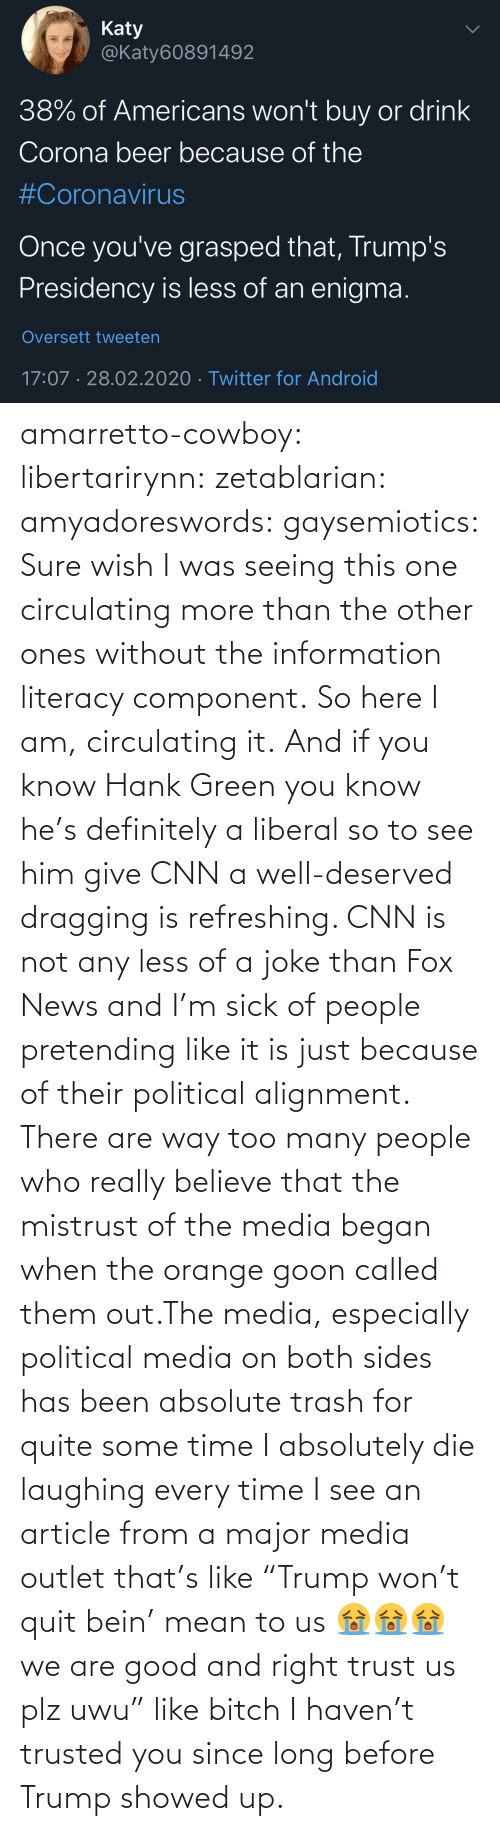 "Orange: amarretto-cowboy:  libertarirynn:  zetablarian:  amyadoreswords:   gaysemiotics:       Sure wish I was seeing this one circulating more than the other ones without the information literacy component. So here I am, circulating it.    And if you know Hank Green you know he's definitely a liberal so to see him give CNN a well-deserved dragging is refreshing. CNN is not any less of a joke than Fox News and I'm sick of people pretending like it is just because of their political alignment.   There are way too many people who really believe that the mistrust of the media began when the orange goon called them out.The media, especially political media on both sides has been absolute trash for quite some time   I absolutely die laughing every time I see an article from a major media outlet that's like ""Trump won't quit bein' mean to us 😭😭😭 we are good and right trust us plz uwu"" like bitch I haven't trusted you since long before Trump showed up."